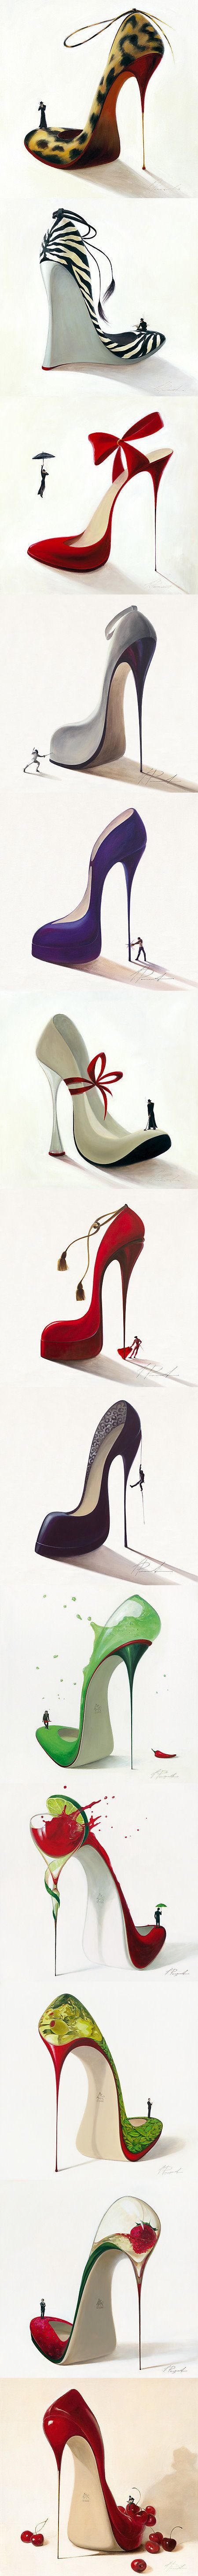 All the beautiful shoe illustrations by Inna Panasenko.